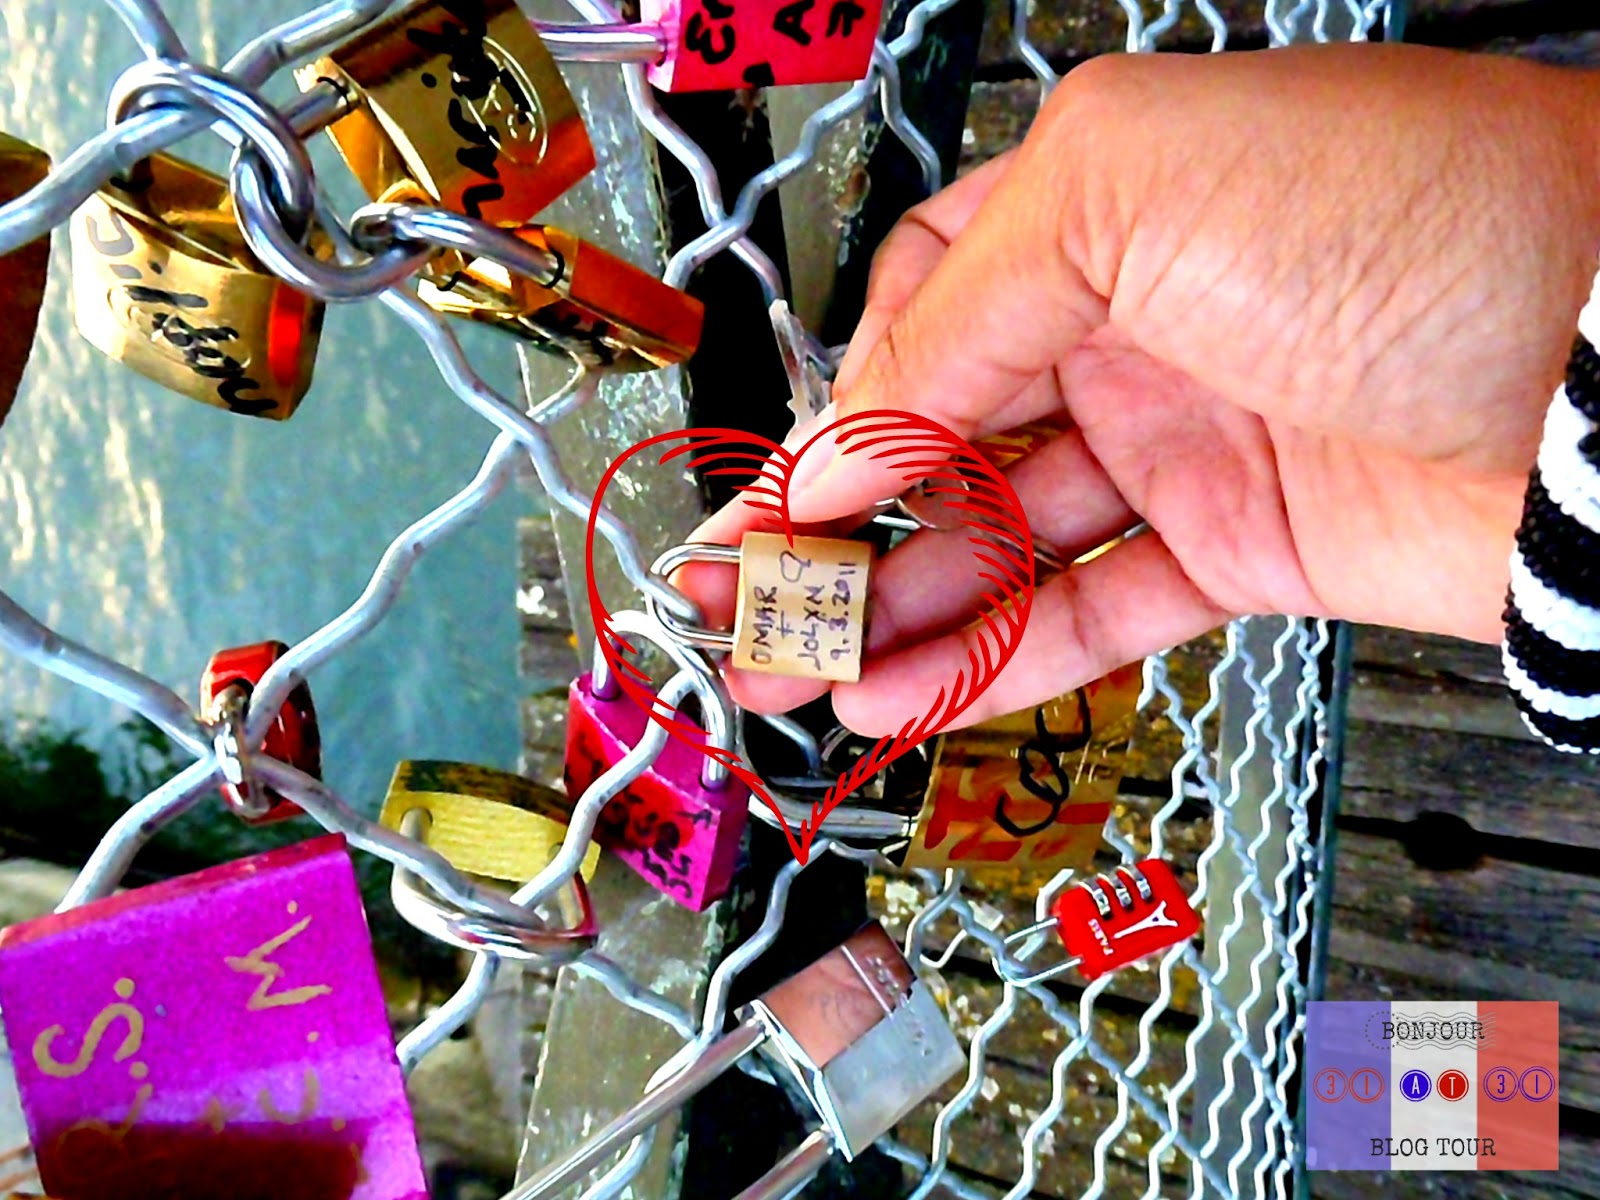 A closer view of the locks on Pont des Arts Love Lock Bridge in Paris, France.